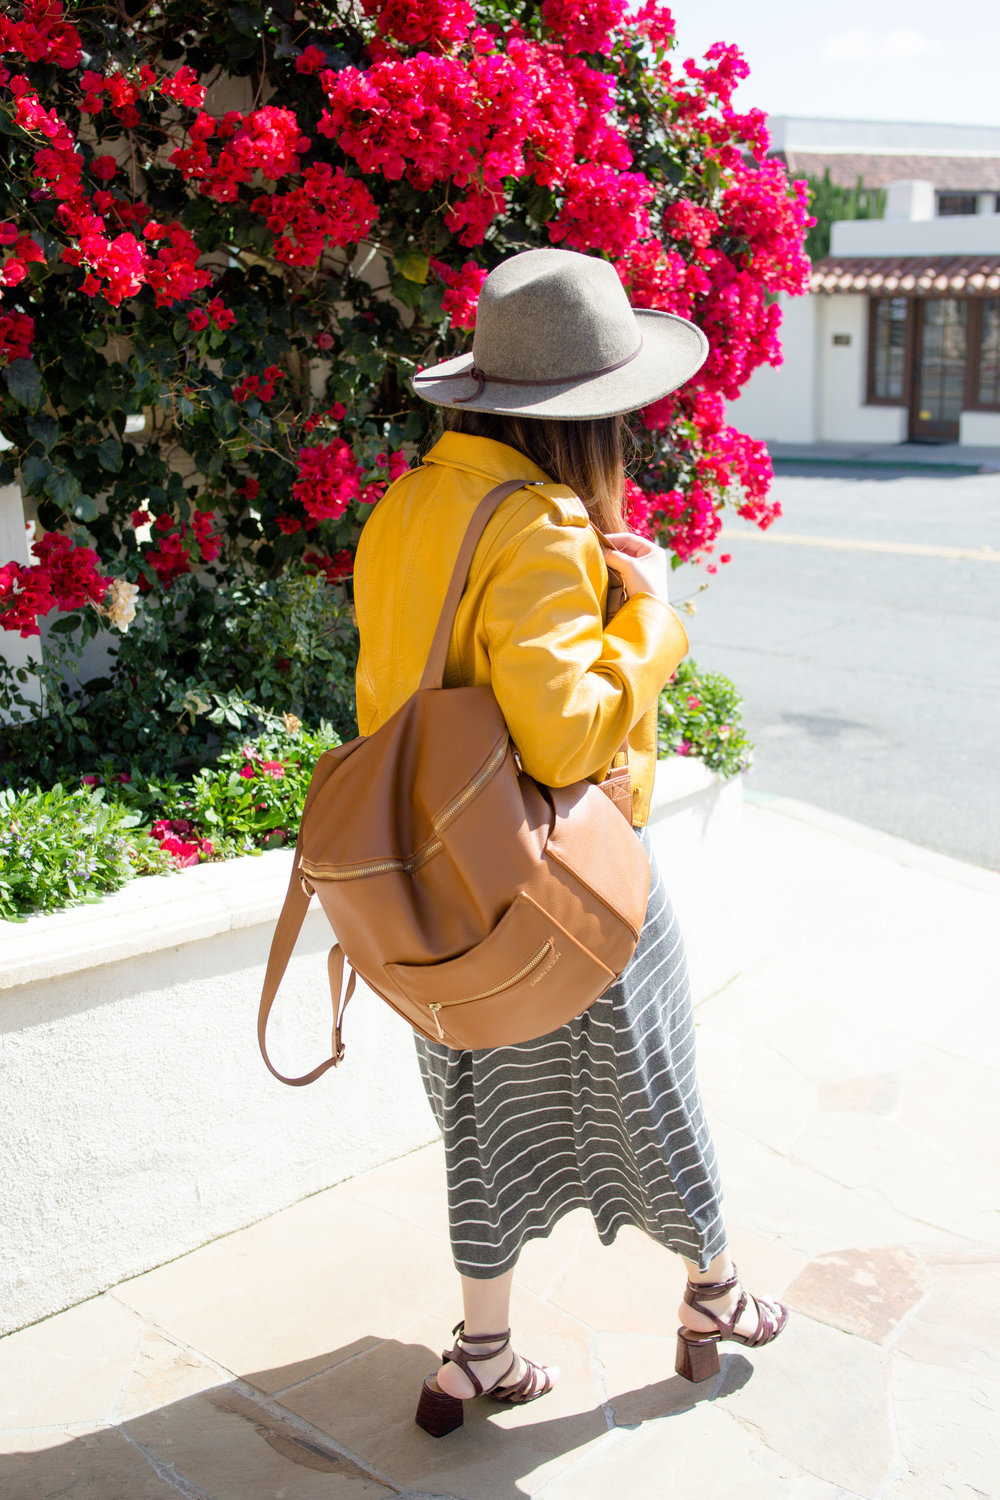 Streetstyle fashion of a millenial mama wearing yellow Zara motto jacket, dwell & slumber dress, brixton hat, and fawn design backpack